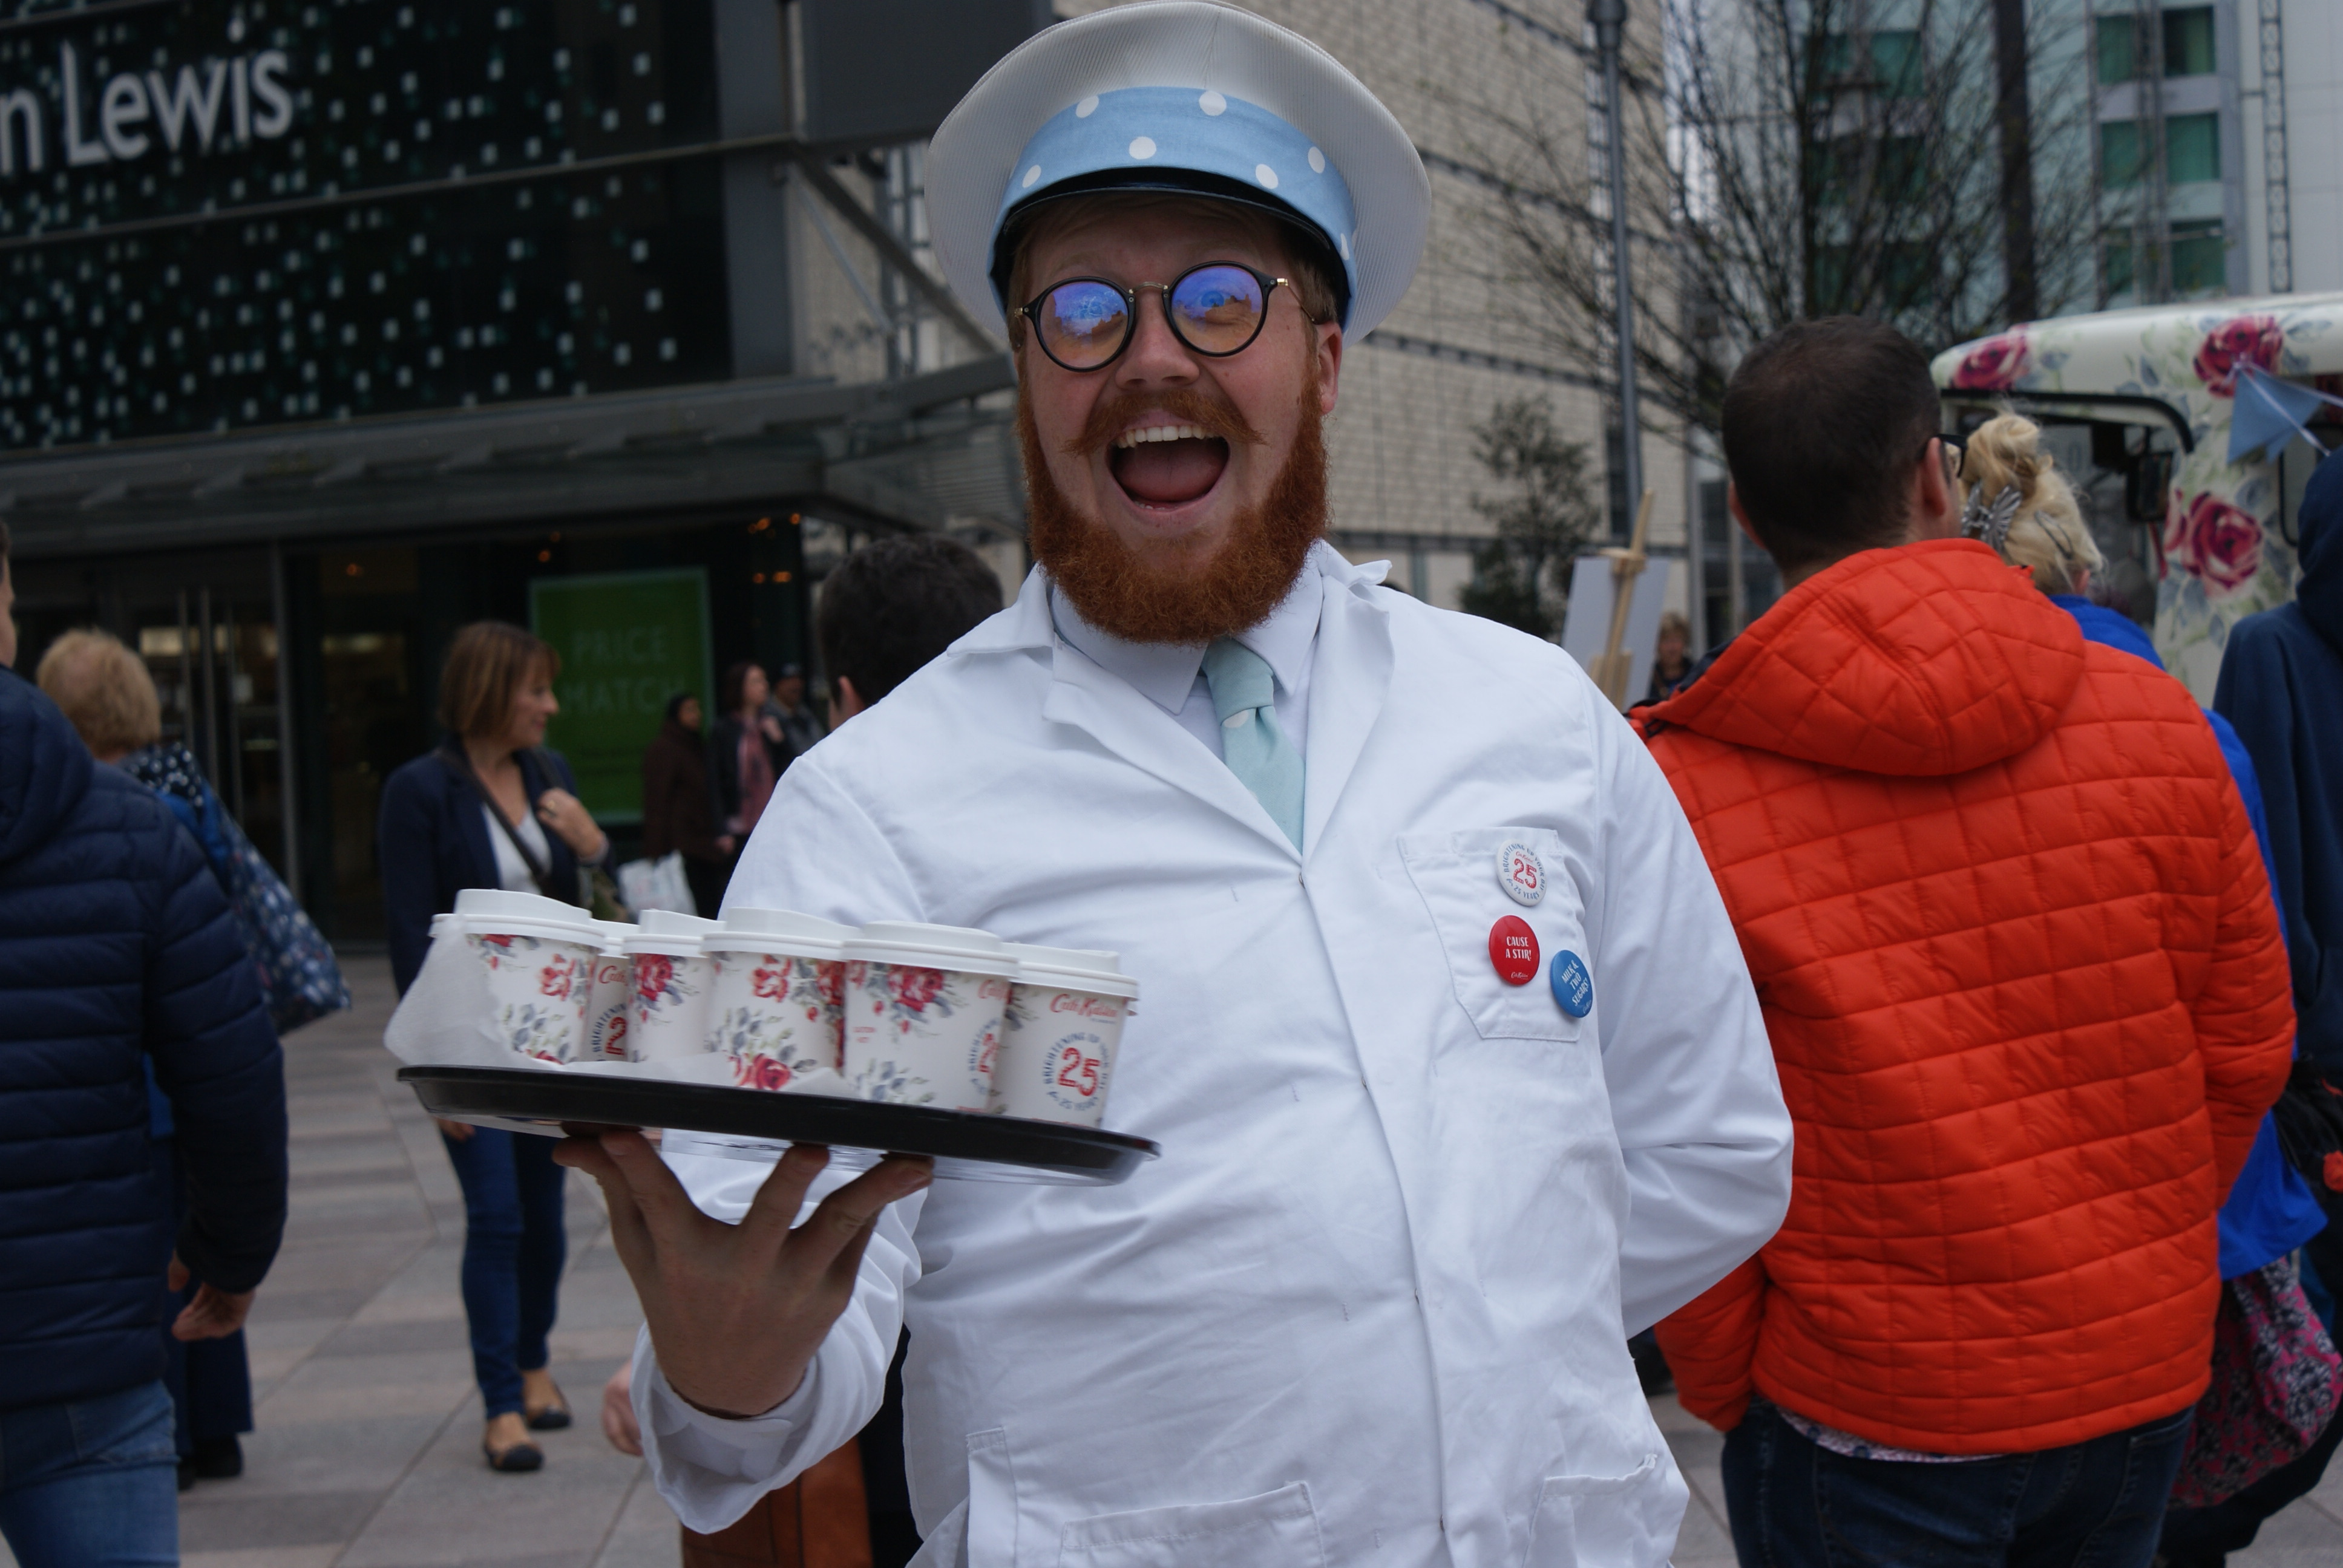 Cath Kidson celebrate their 25th birthday by giving away cups of tea and biscuits from a branded milk float.